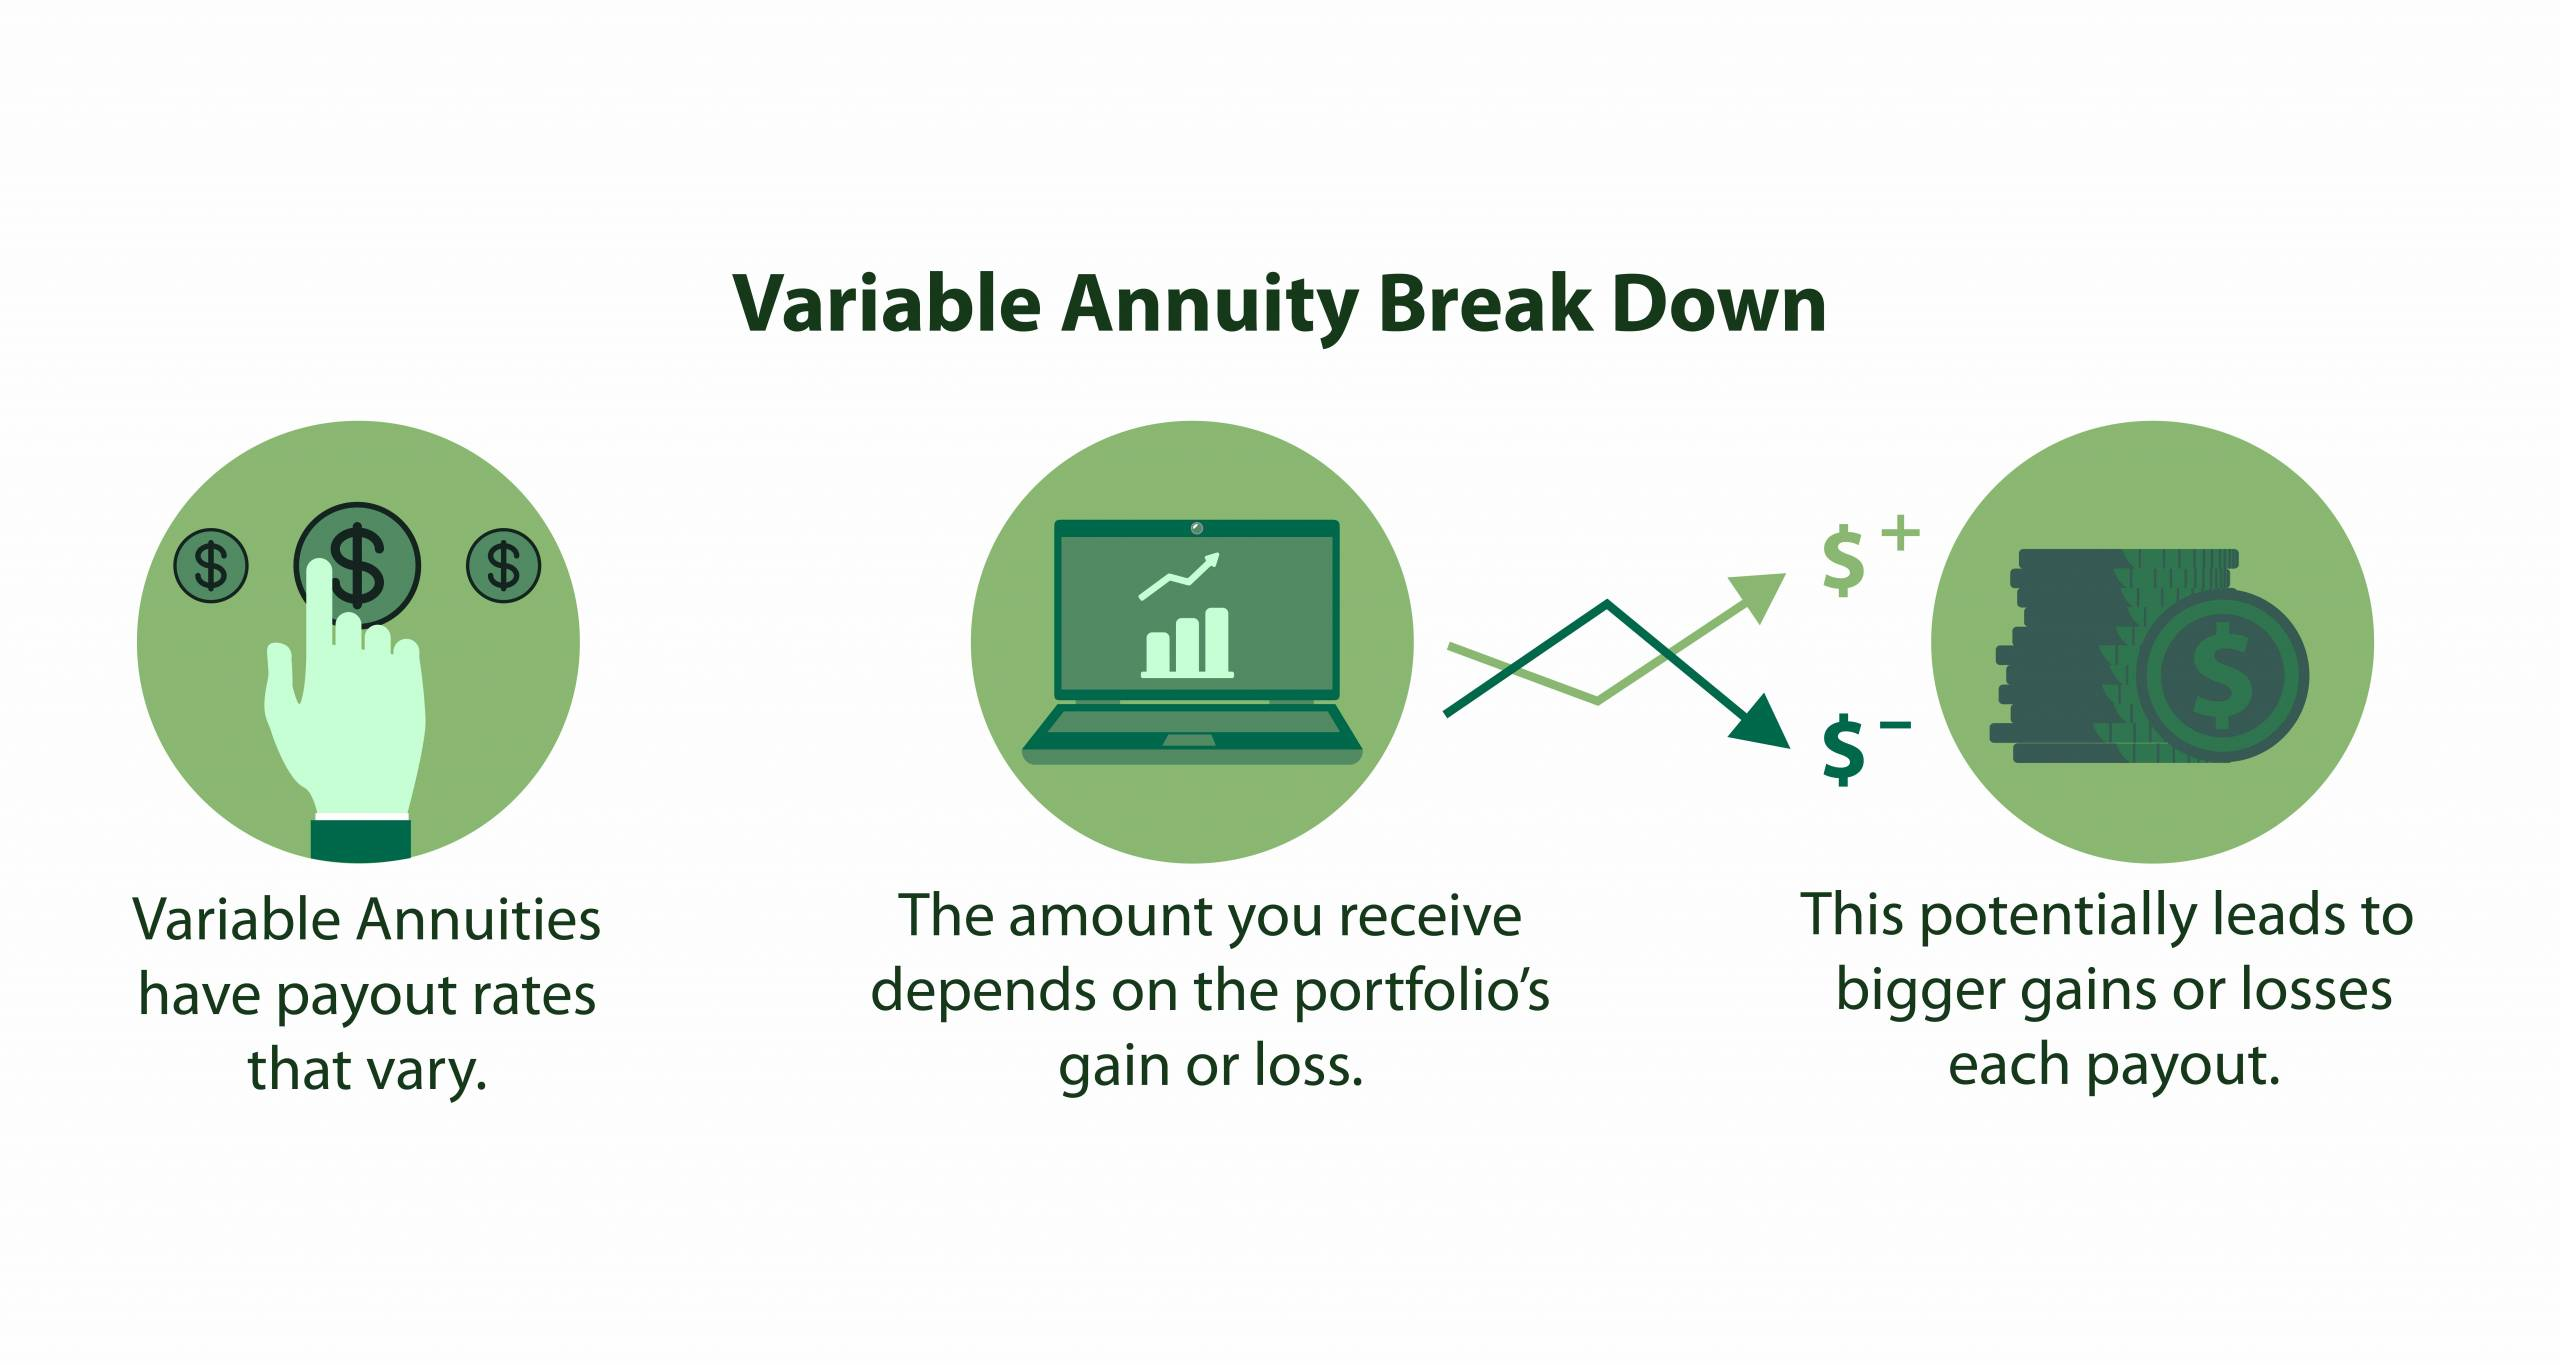 Variable Annuity Breakdown